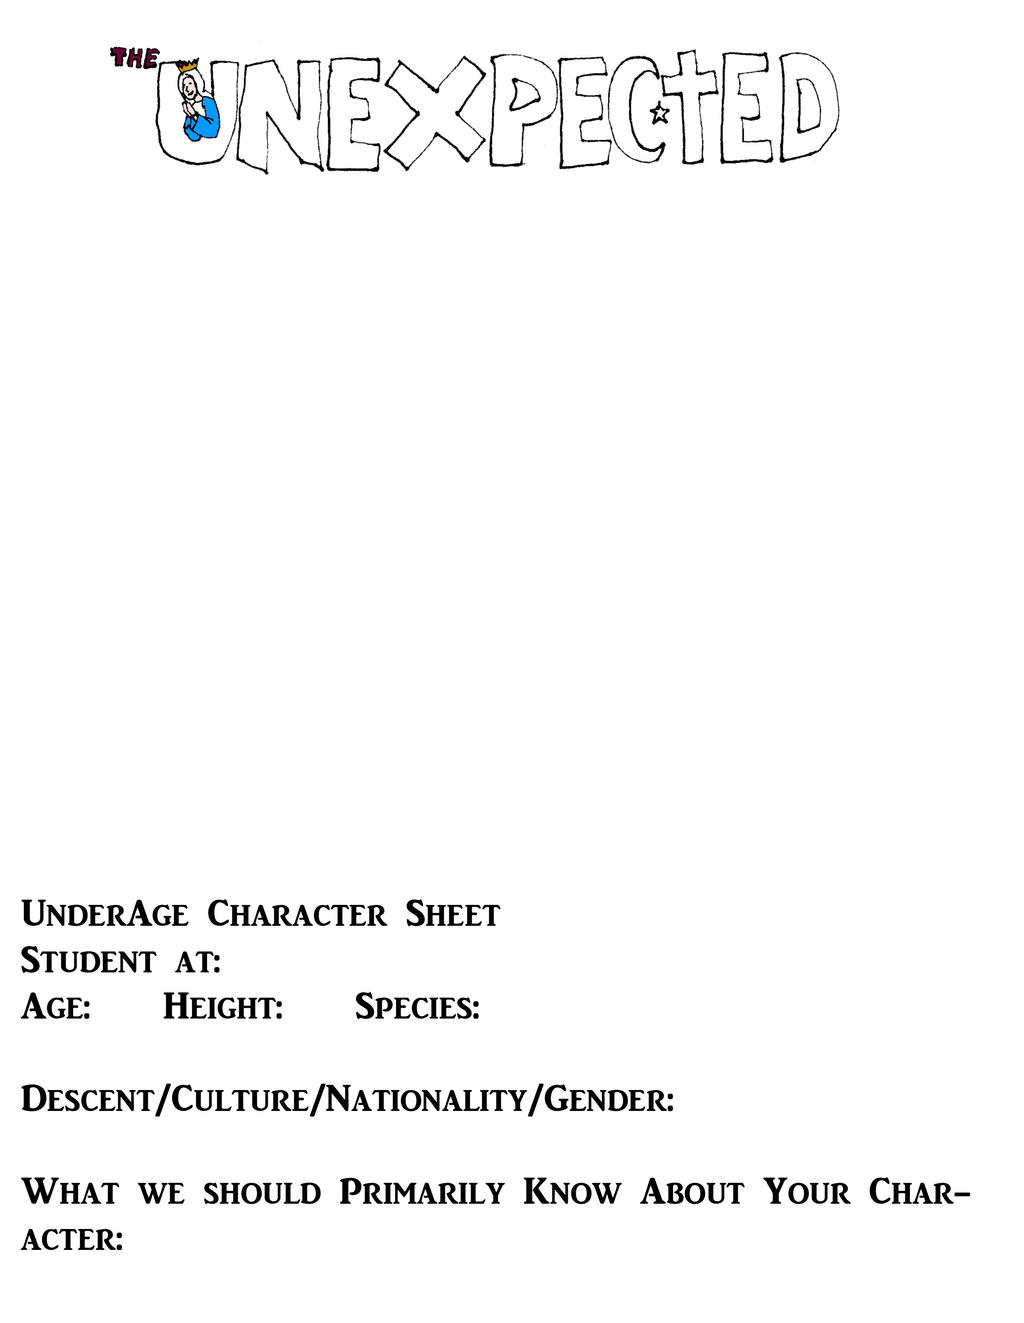 Character Sheet for The UnExpected: Underage Chara by DreadedOne131